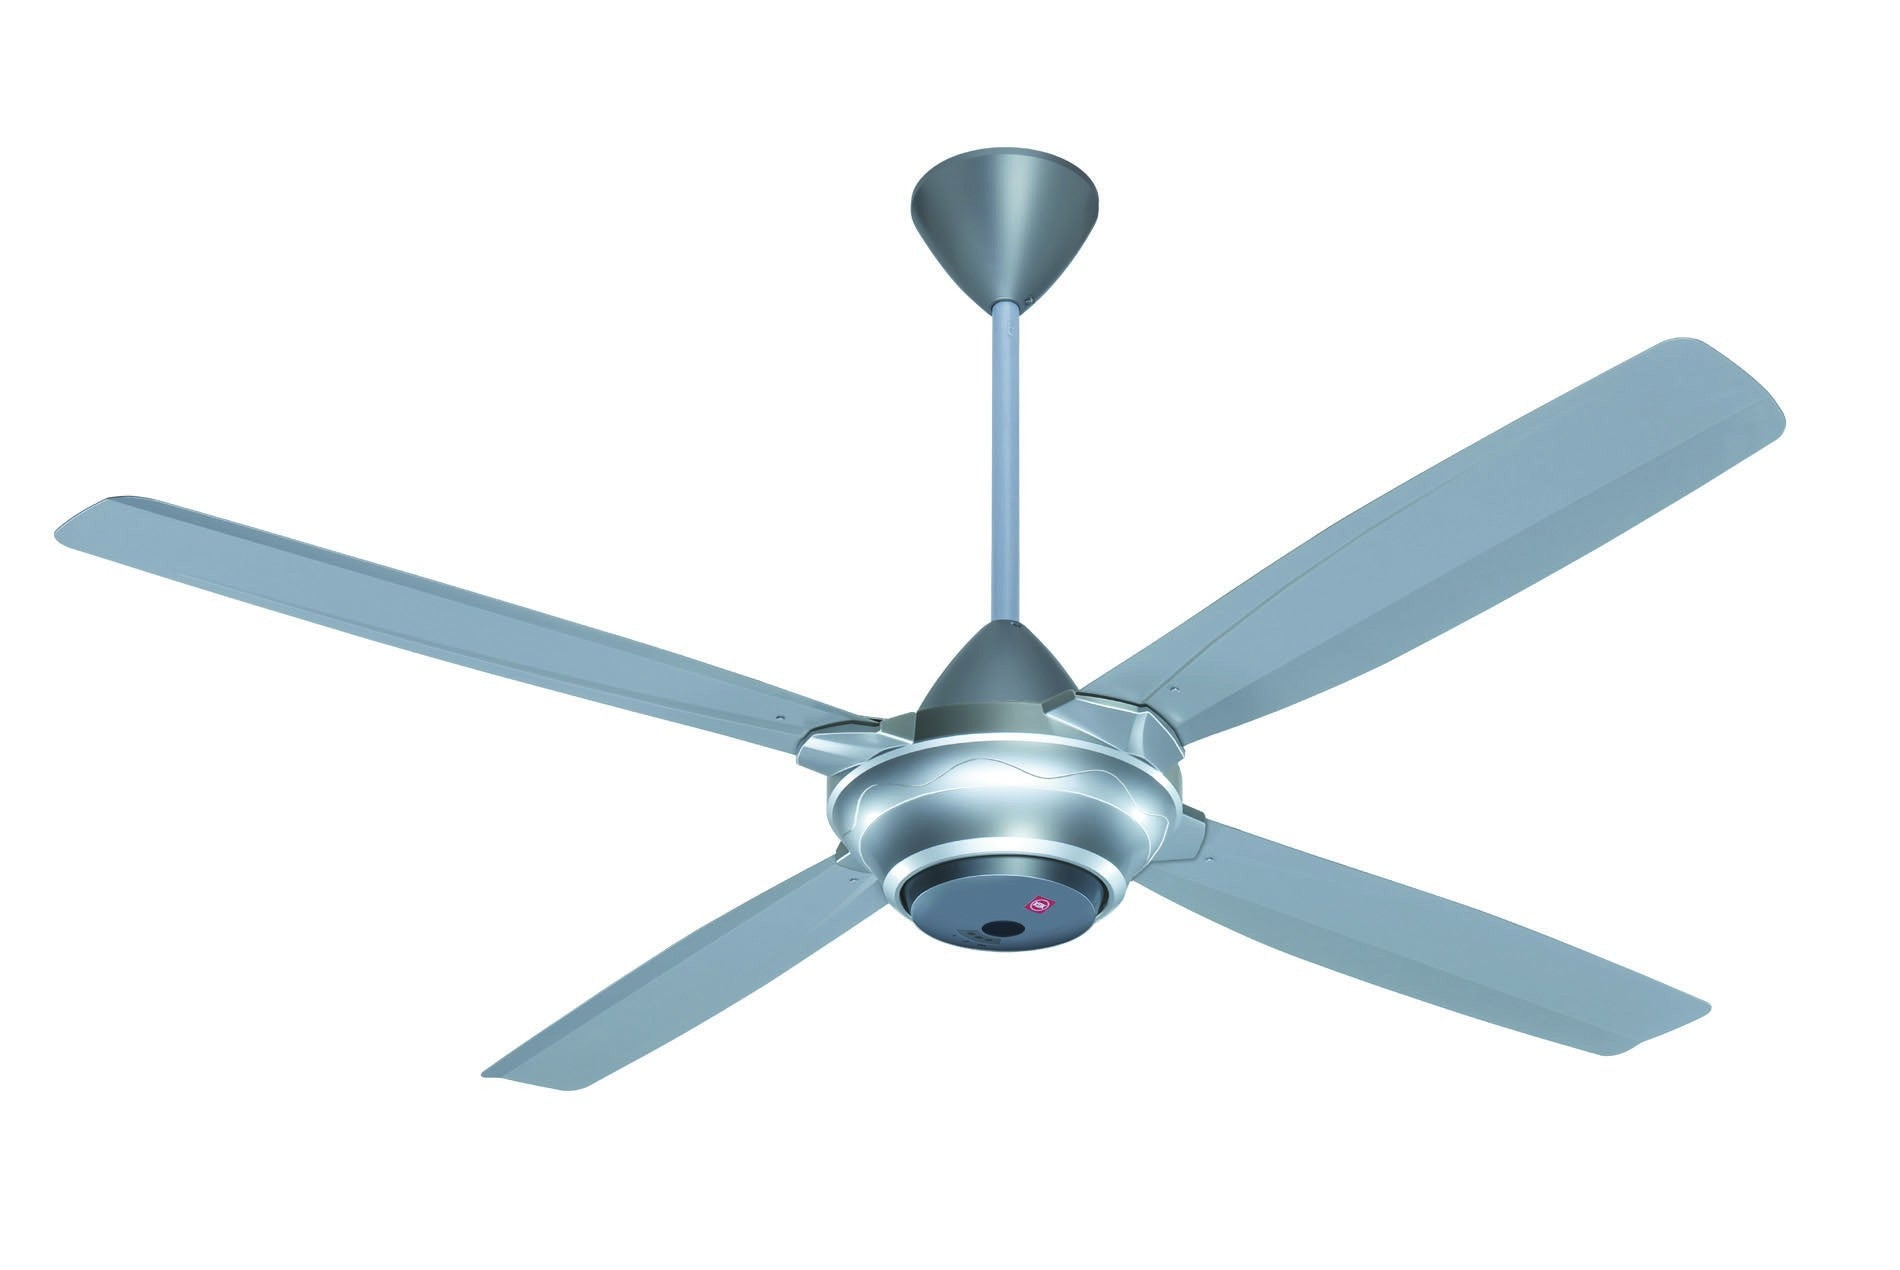 Kdk 56 remote control ceiling fan m56sr hong kwang electric co kdk 56 remote control ceiling fan m56sr hong kwang electric co pte ltd aloadofball Choice Image